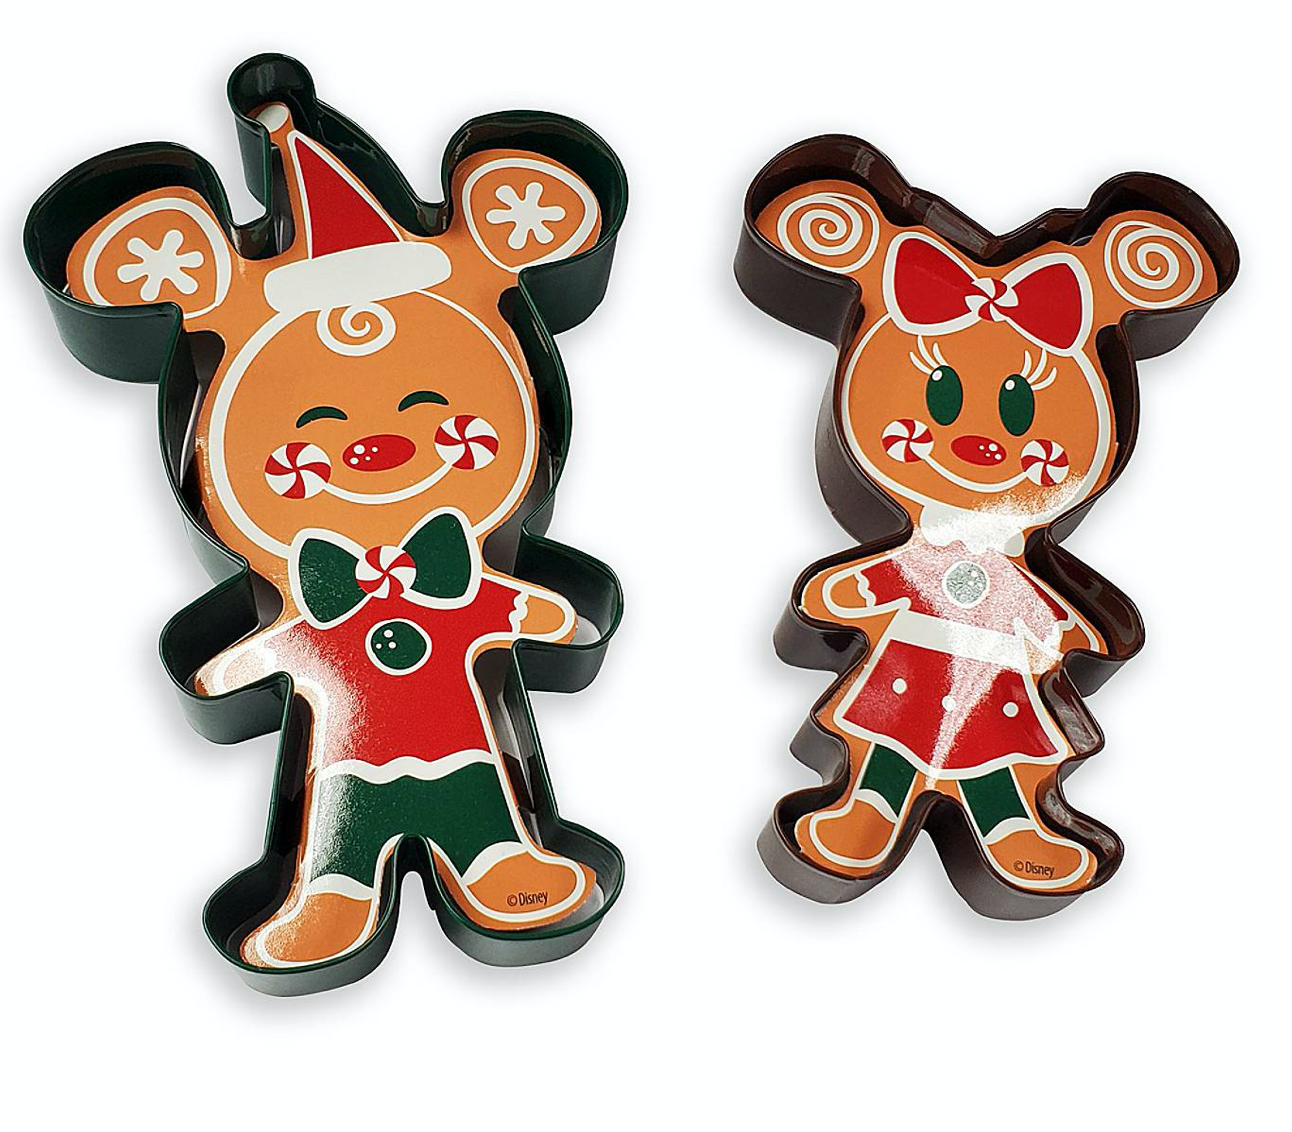 Disney Mickey Friends Gingerbread Christmas Holiday Baking Set New For 2020!